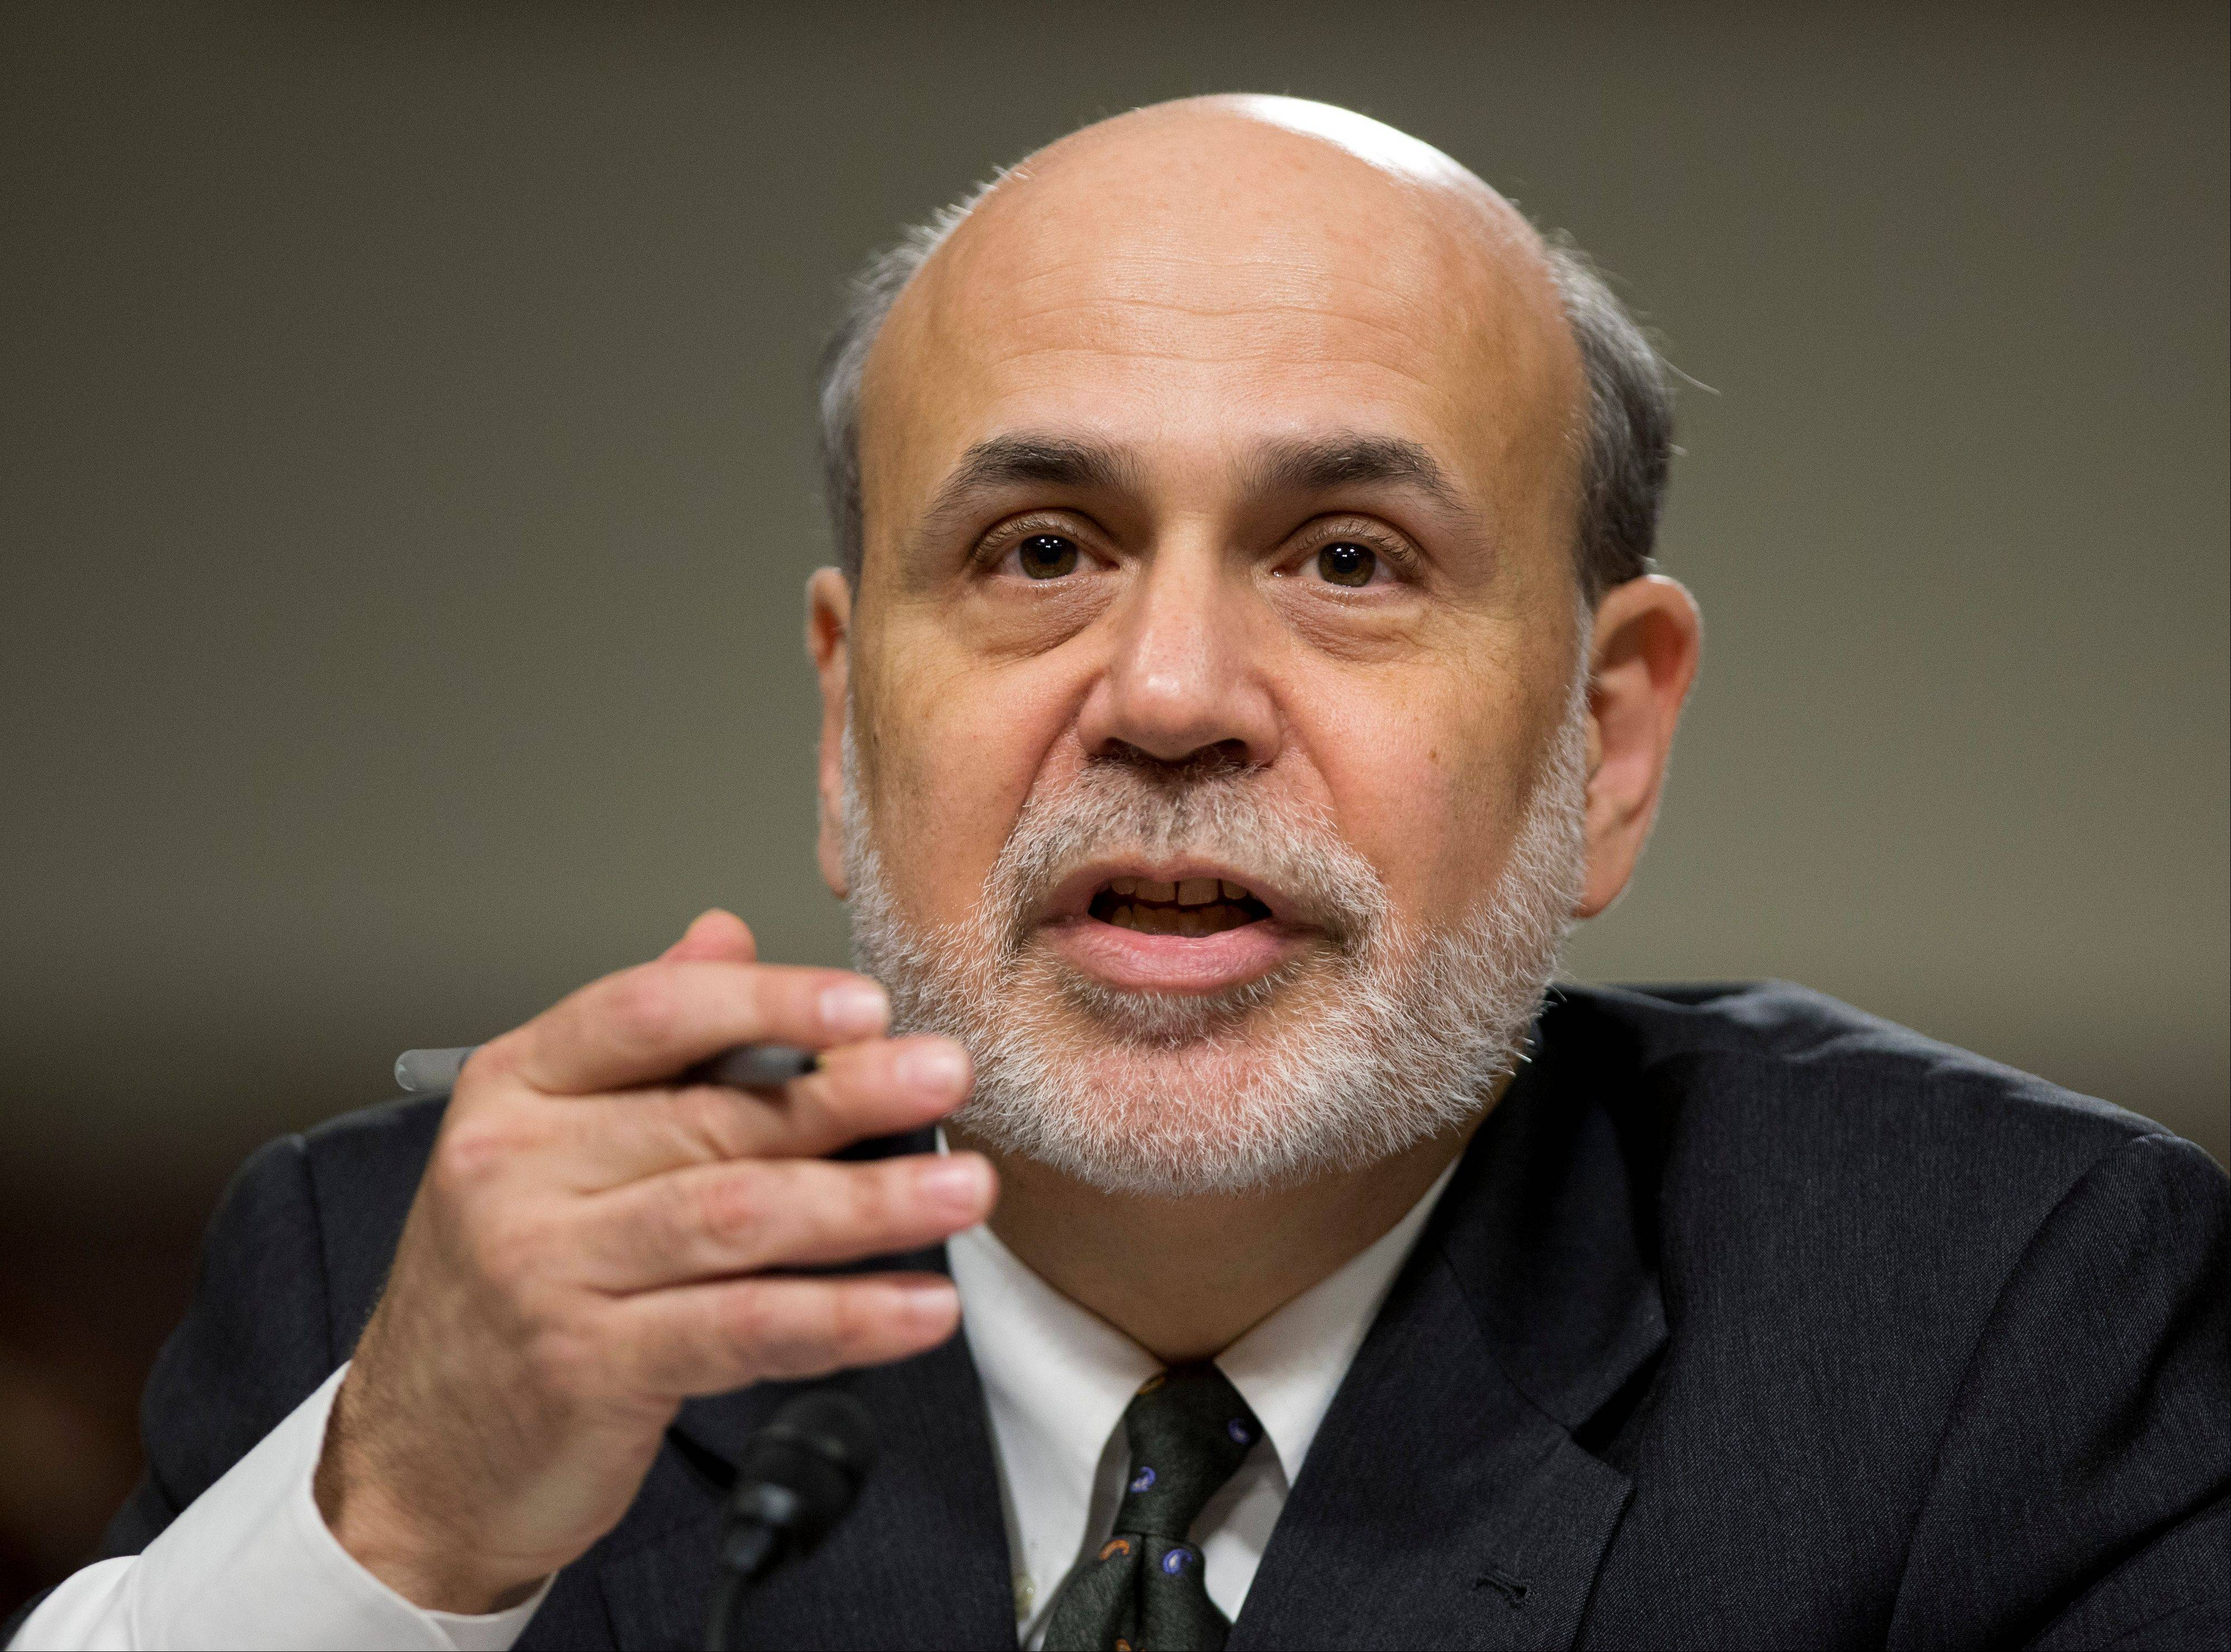 ASSOCIATED PRESSFederal Reserve Chairman Ben Bernanke, testifying on Capitol Hill Wednesday, said the U.S. job market remains weak and it is too soon for the Federal Reserve to end its extraordinary stimulus programs.